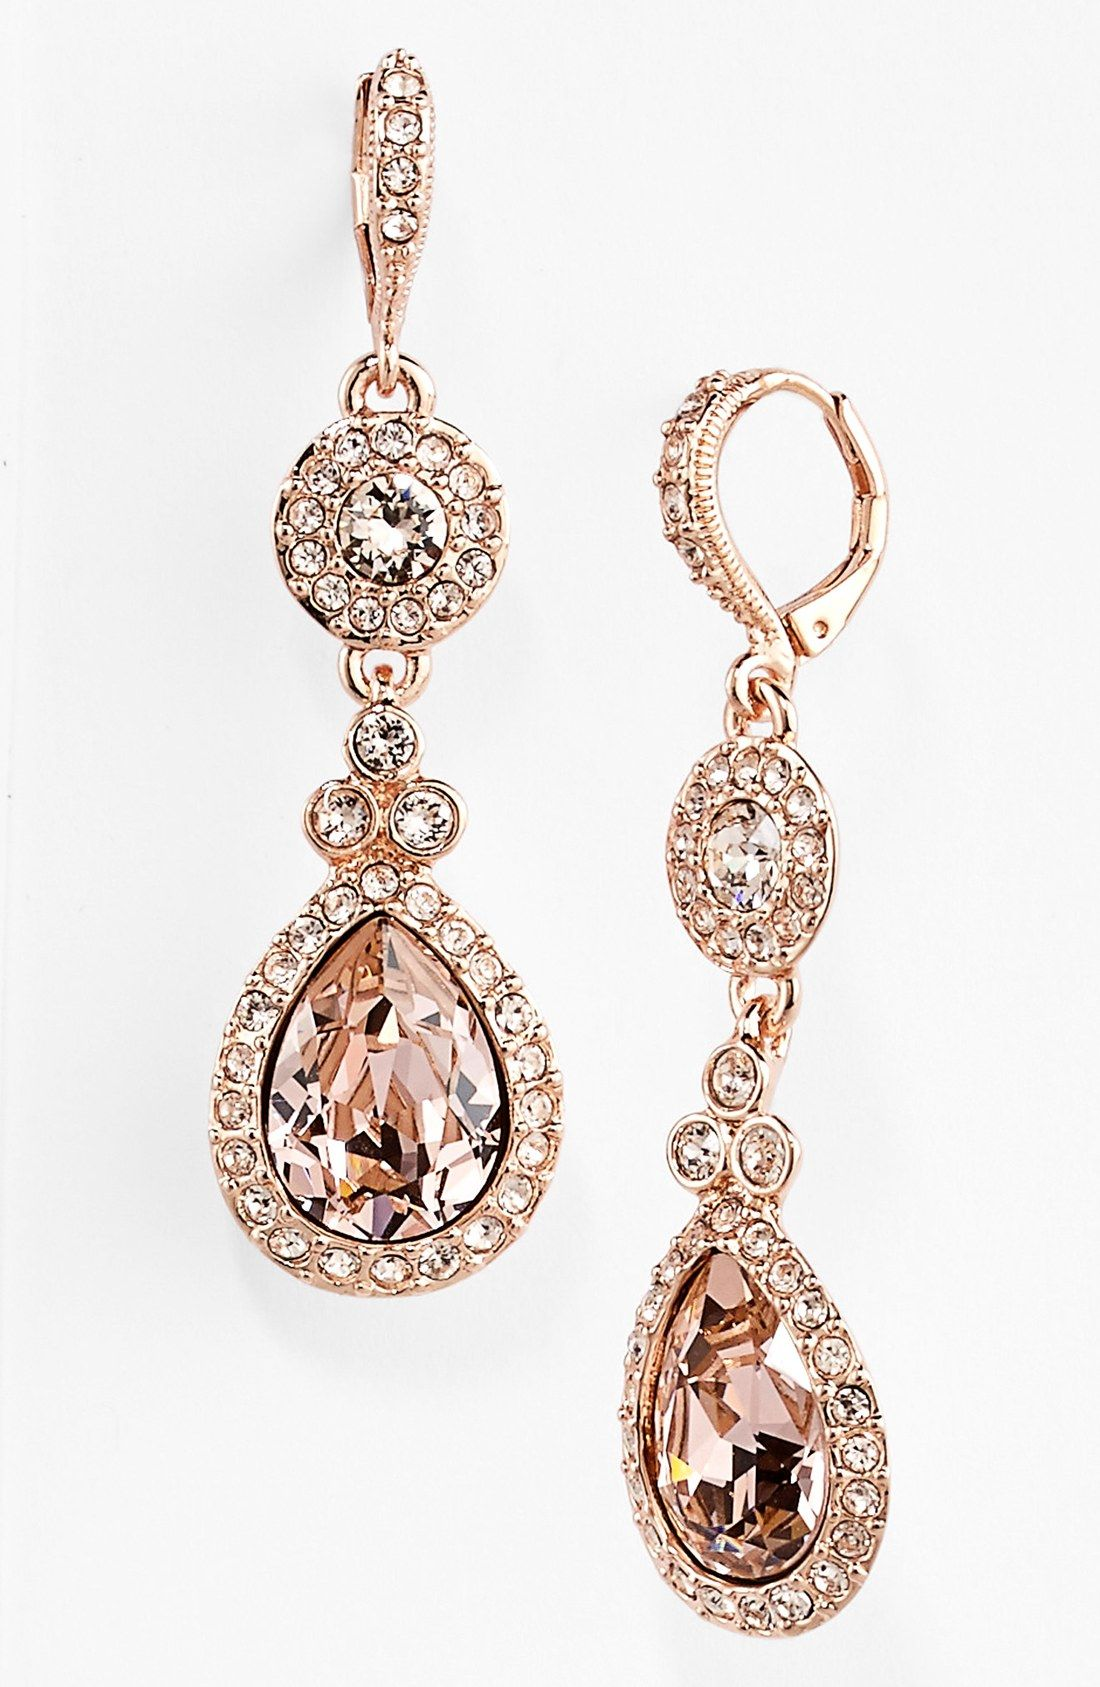 In Love With These Sparkly Crystal And Rose Gold Teardrop Earrings